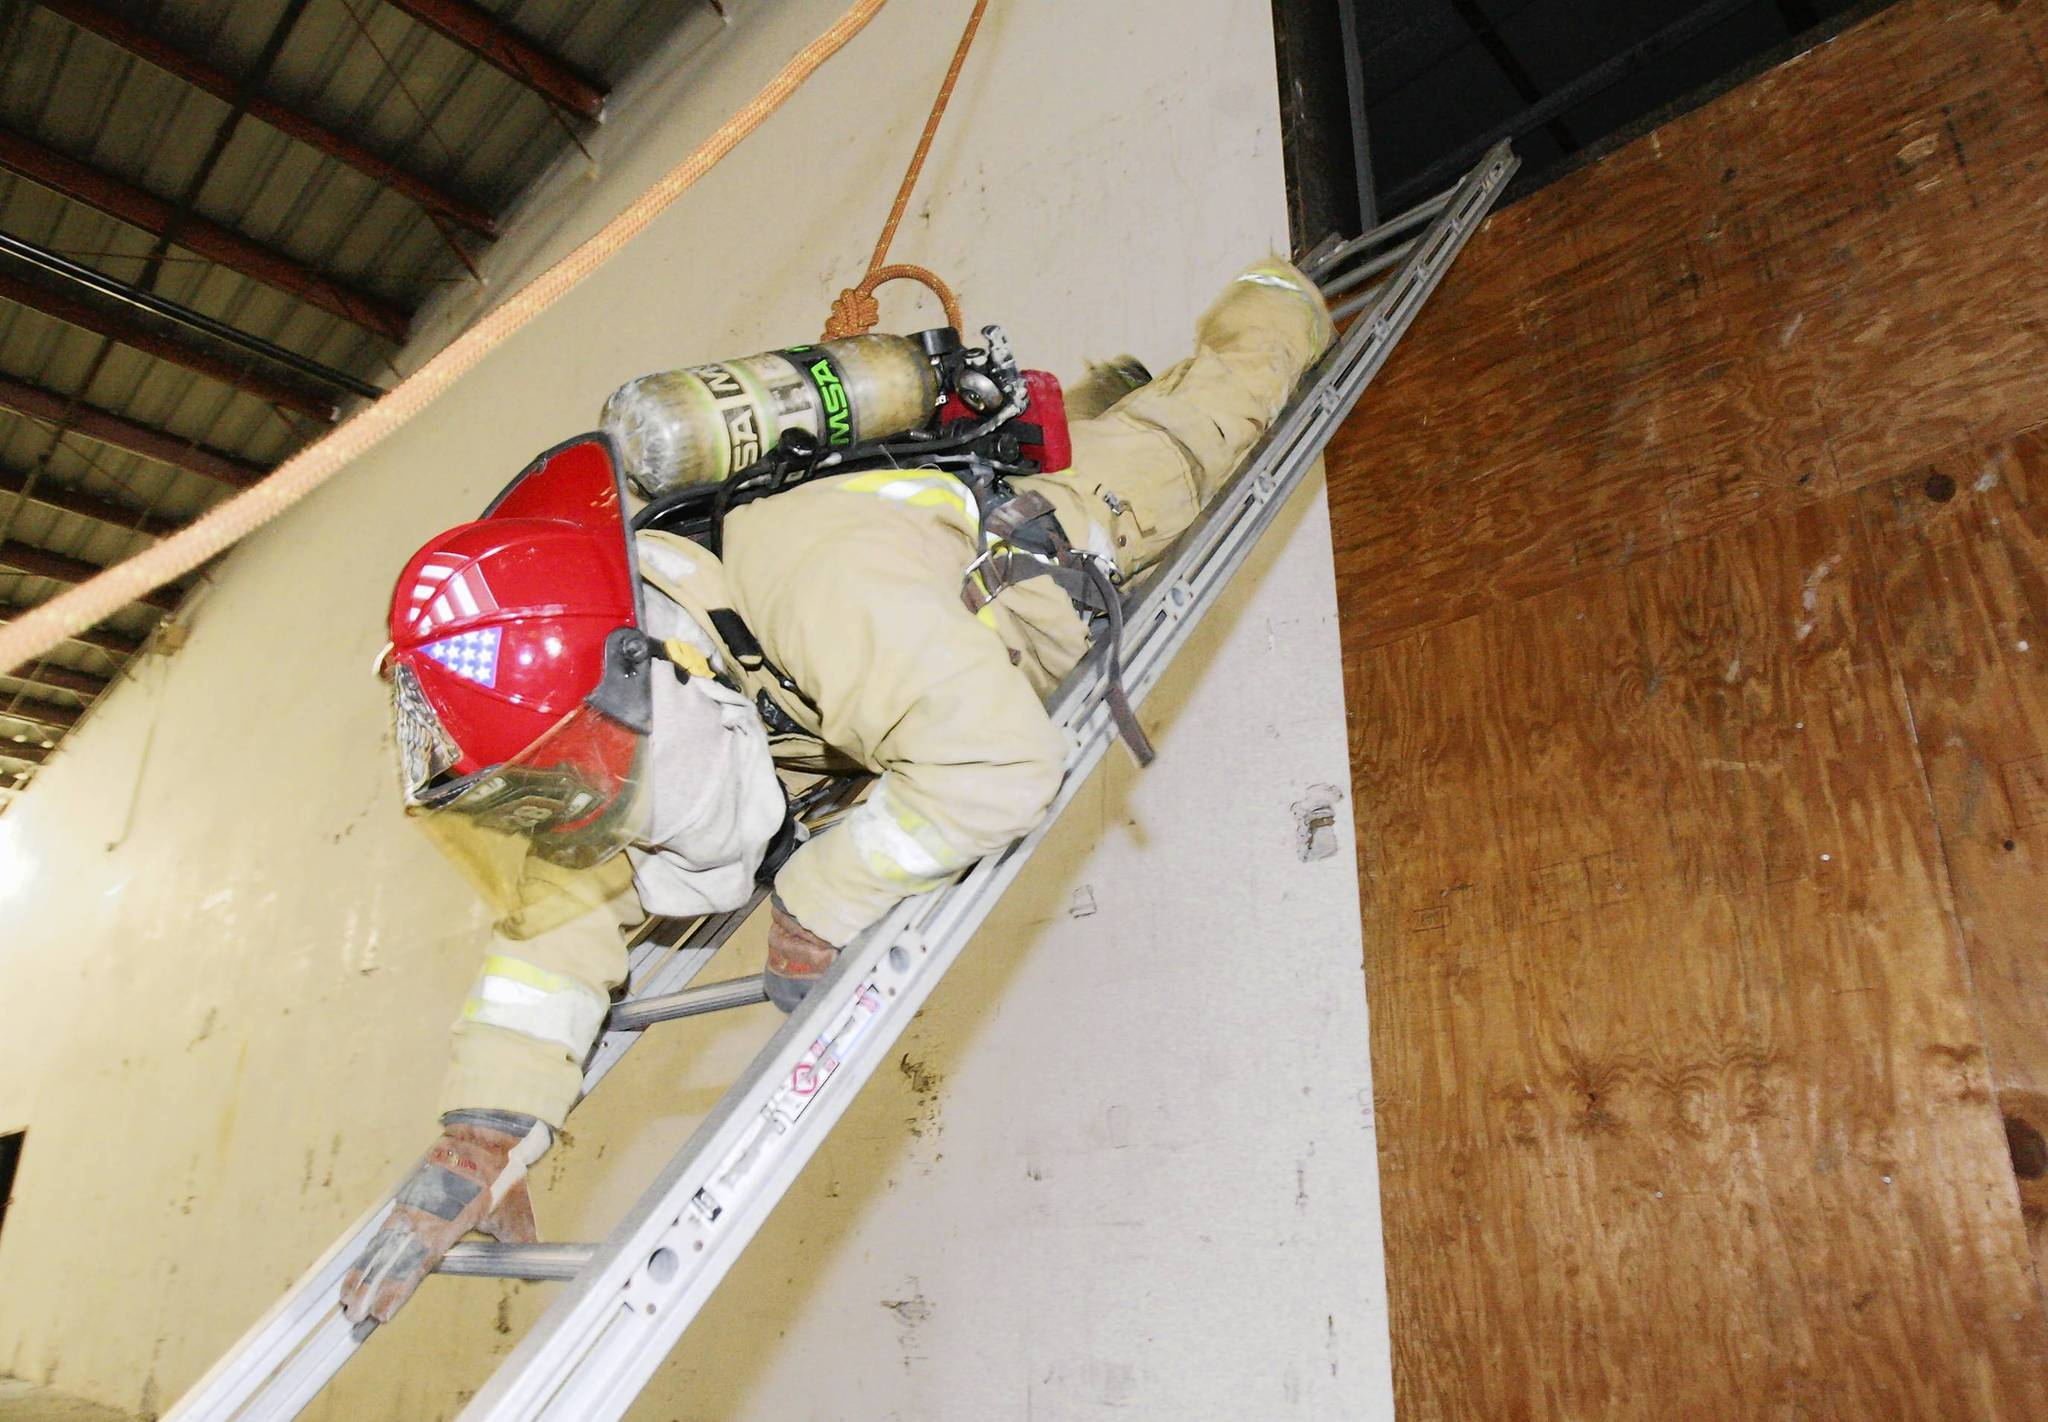 Firefighters train on Wednesday, July 18, 2012 .Firefighters from Eustis, Mount Dora, Tavares and Umatilla  took part in firefighter self-rescue training this week in the former Lowes home-improvement store on U.S.   441 in Eustis .(Tom Benitez/Orlando Sentinel)